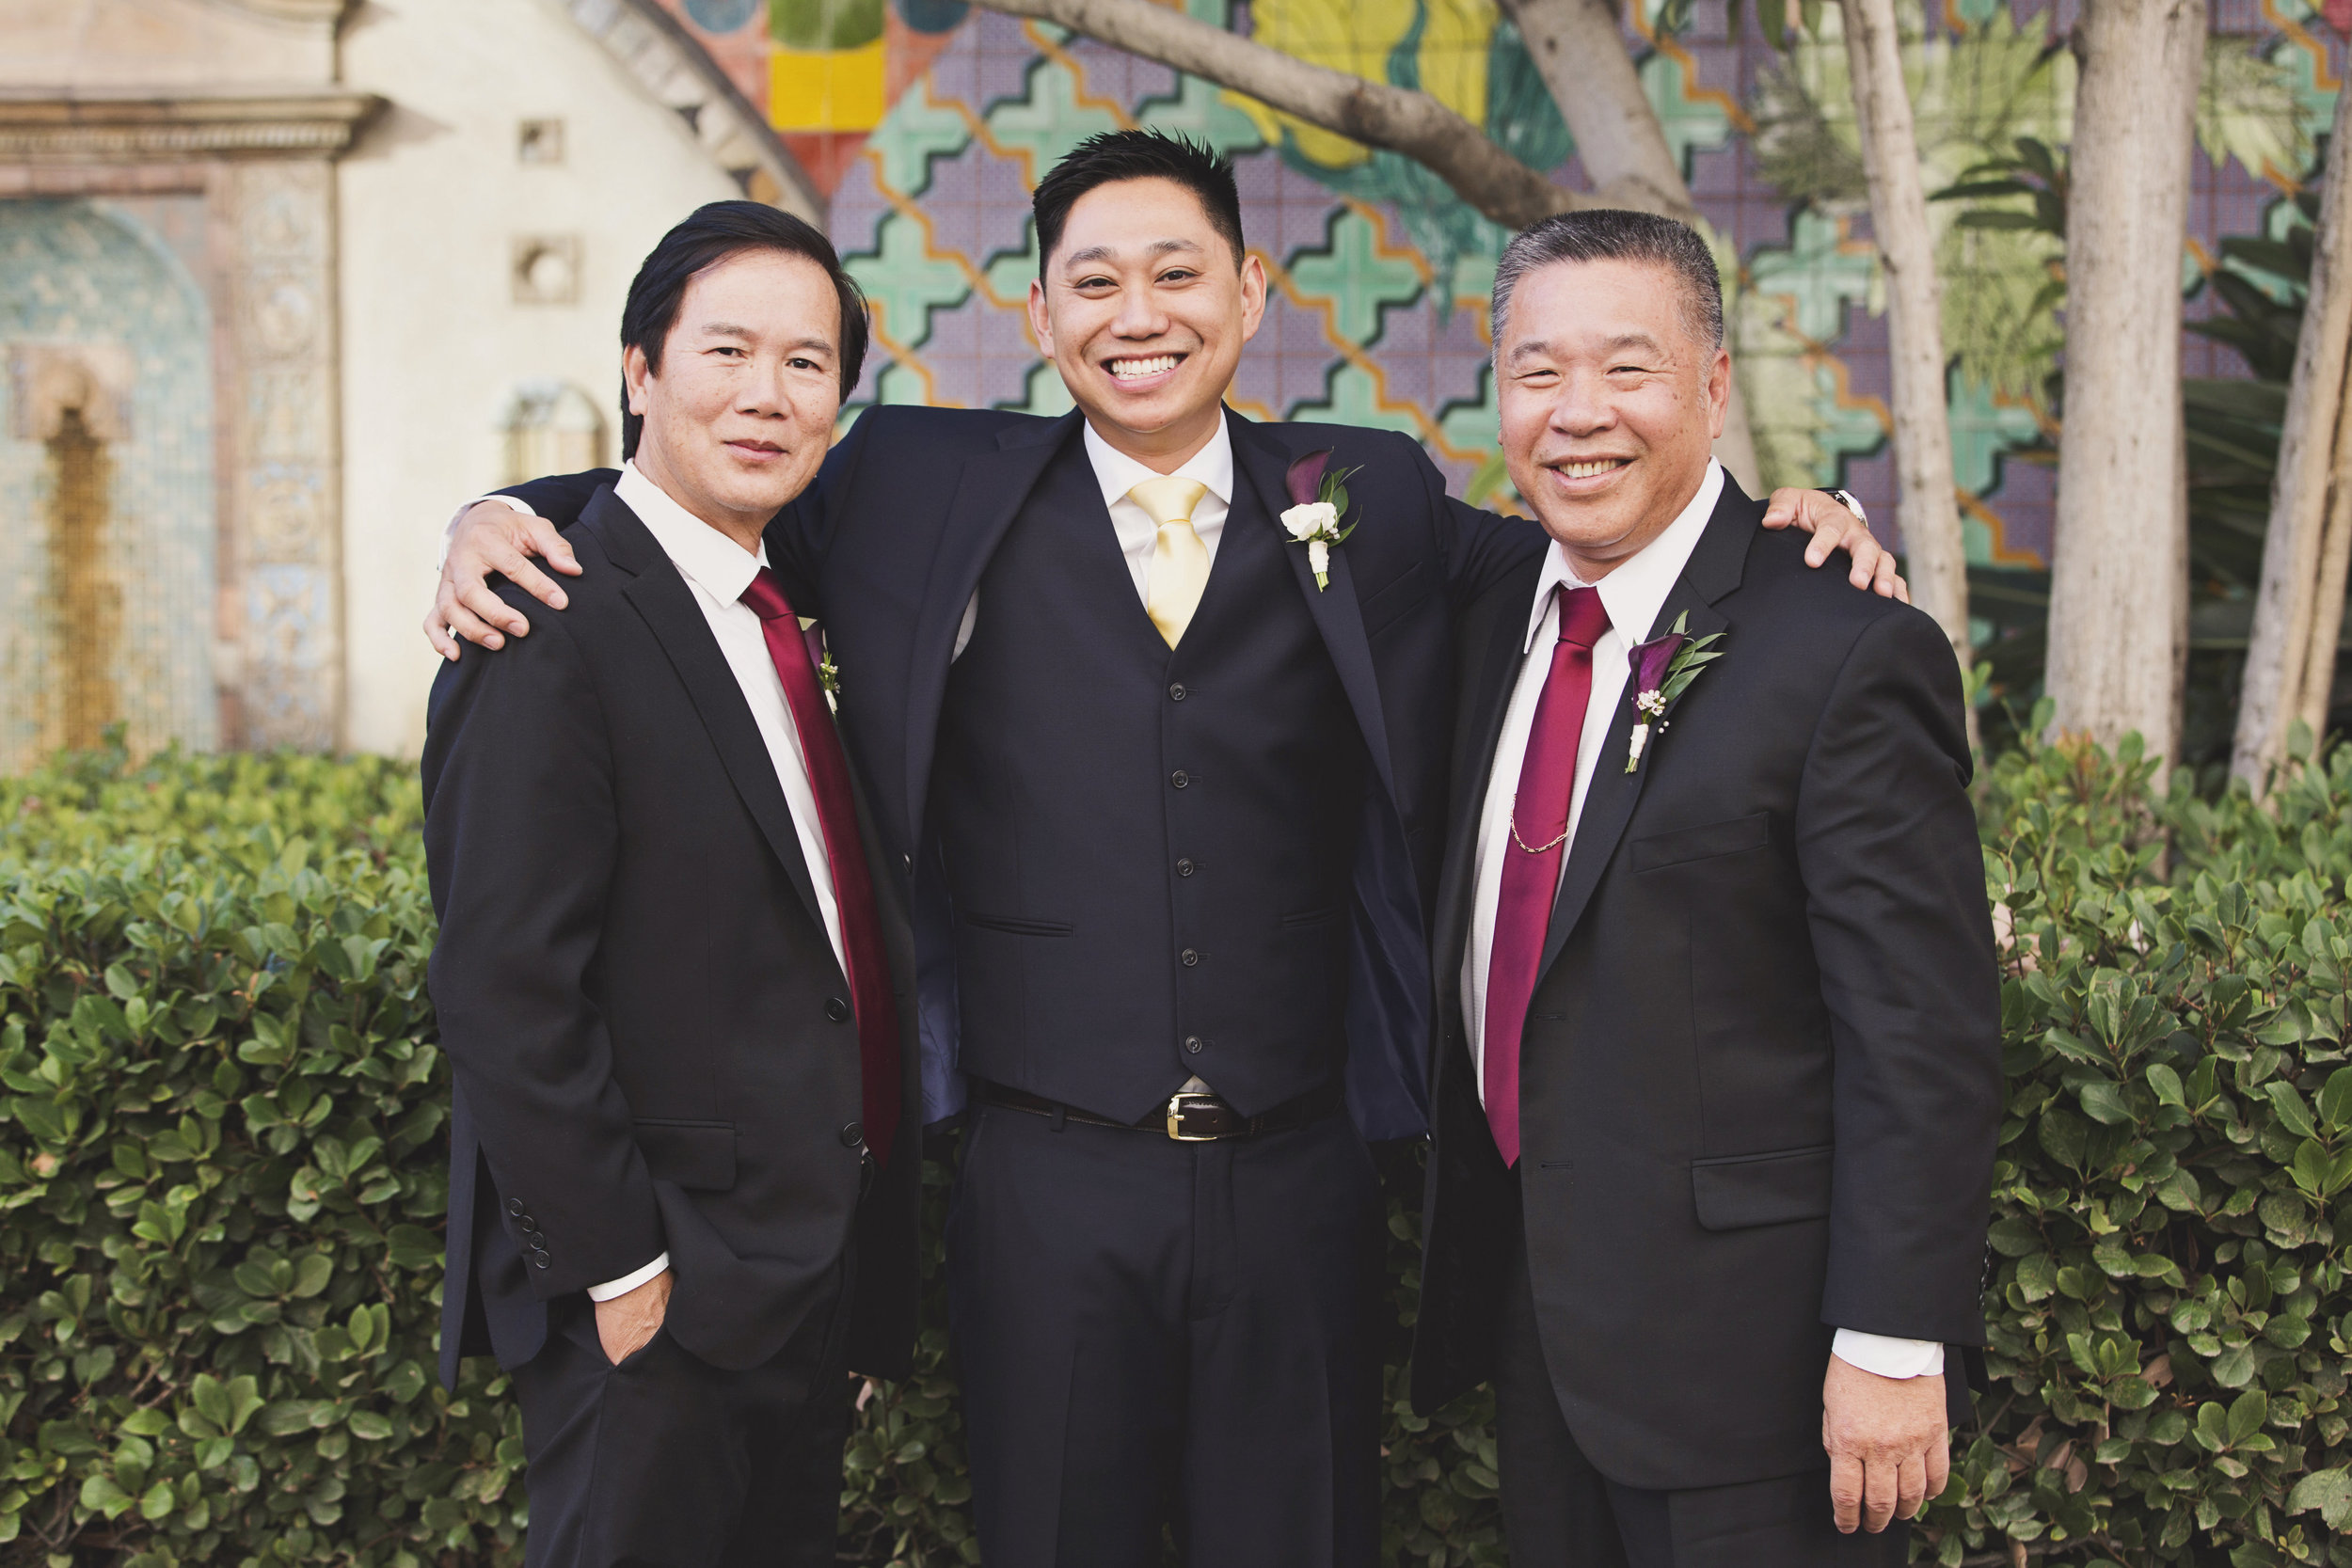 Beautiful Traditional Modern Chinese Wedding groom with the dads.jpg